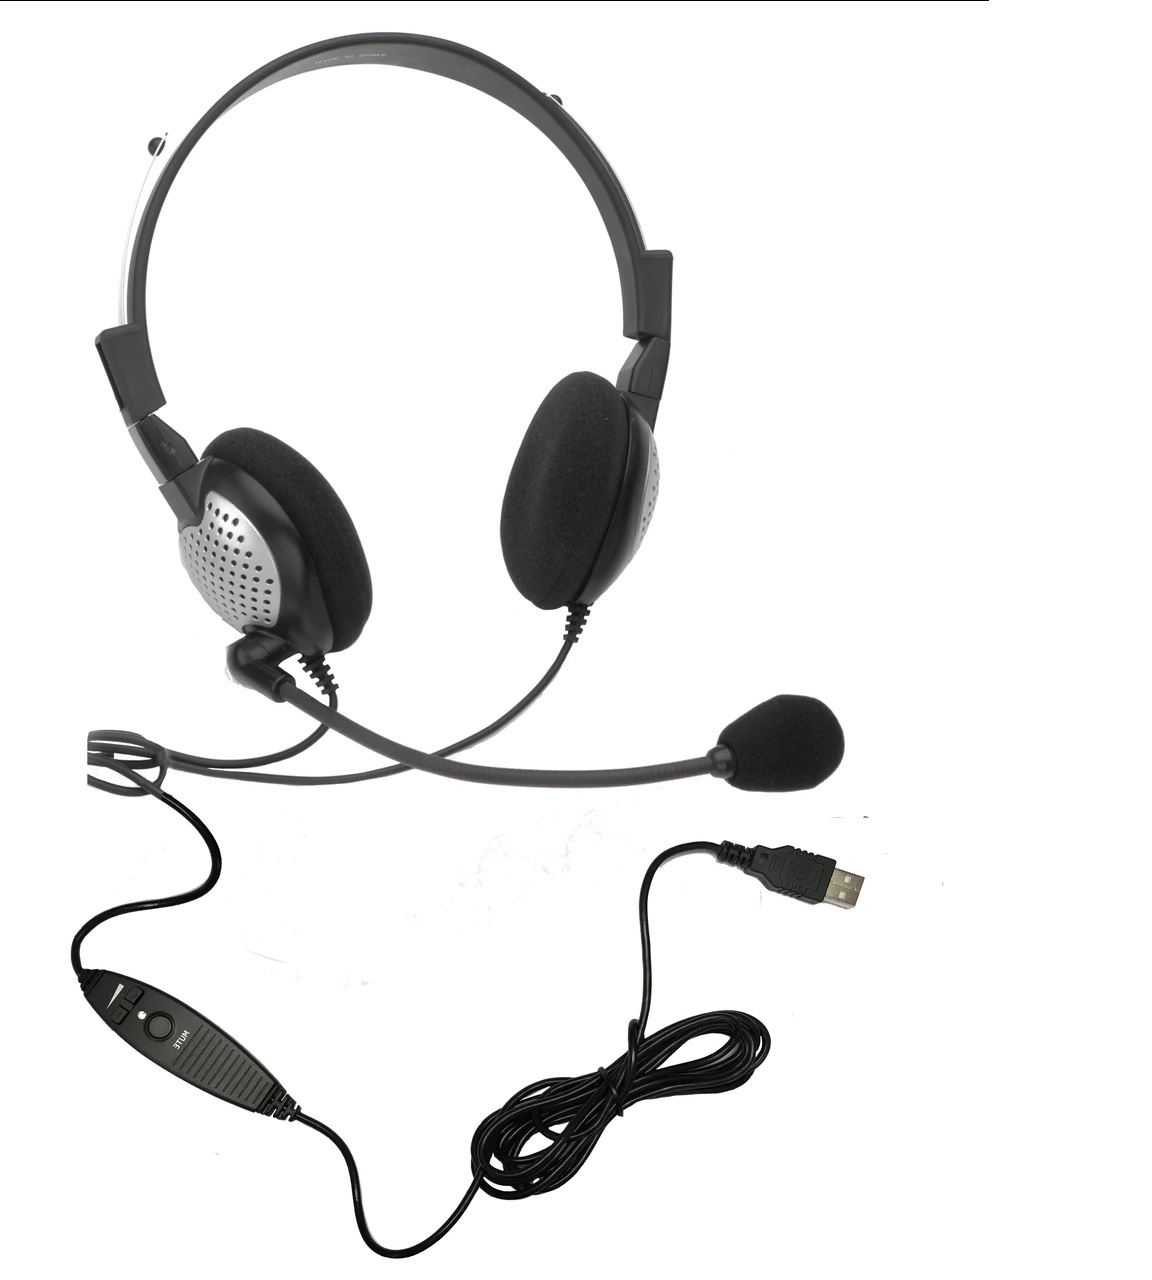 AND-C1-1022600-1 ANDREA NC-185VM USB ON-EAR STEREO COMPUTER HEADSET WITH NOISE-CANCELLING MICROPHONE, IN-LINE VOLUME/MUTE CONTROLS, AND BUILT-IN EXTERNAL SOUND CARD WITH USB PLUG